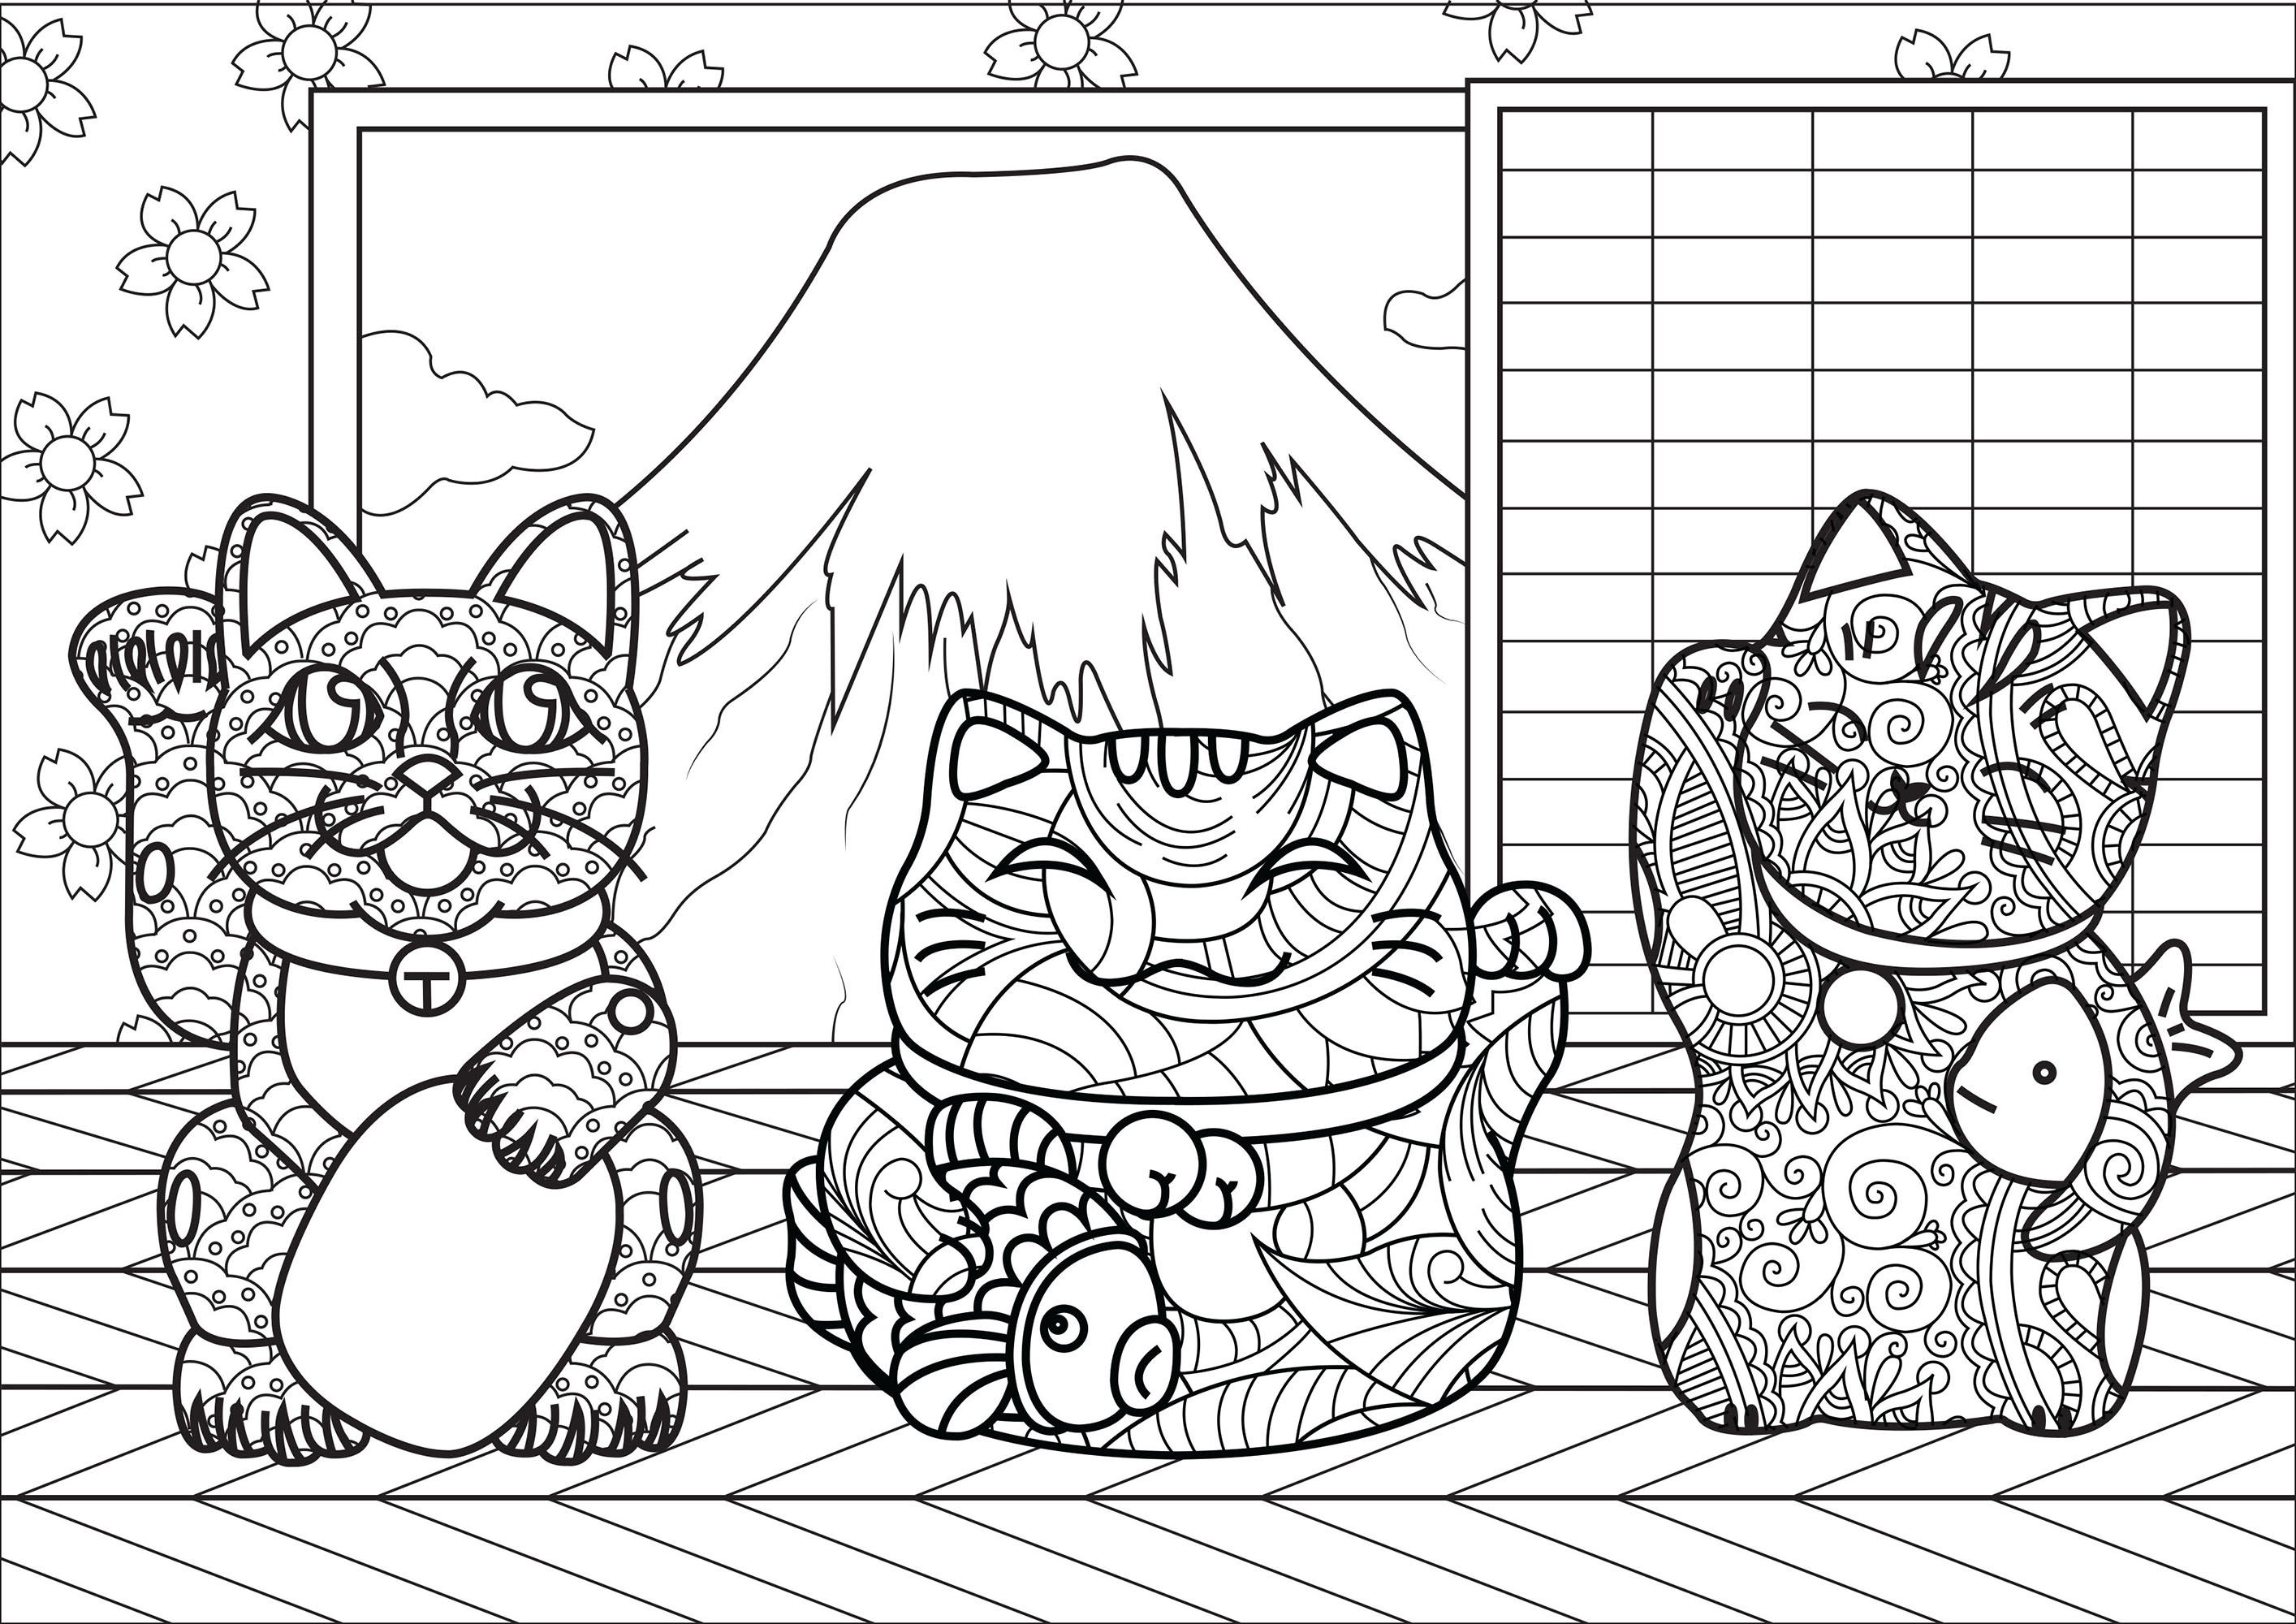 Maneki Neko cats with complex patterns, in a little house near Mount Fuji